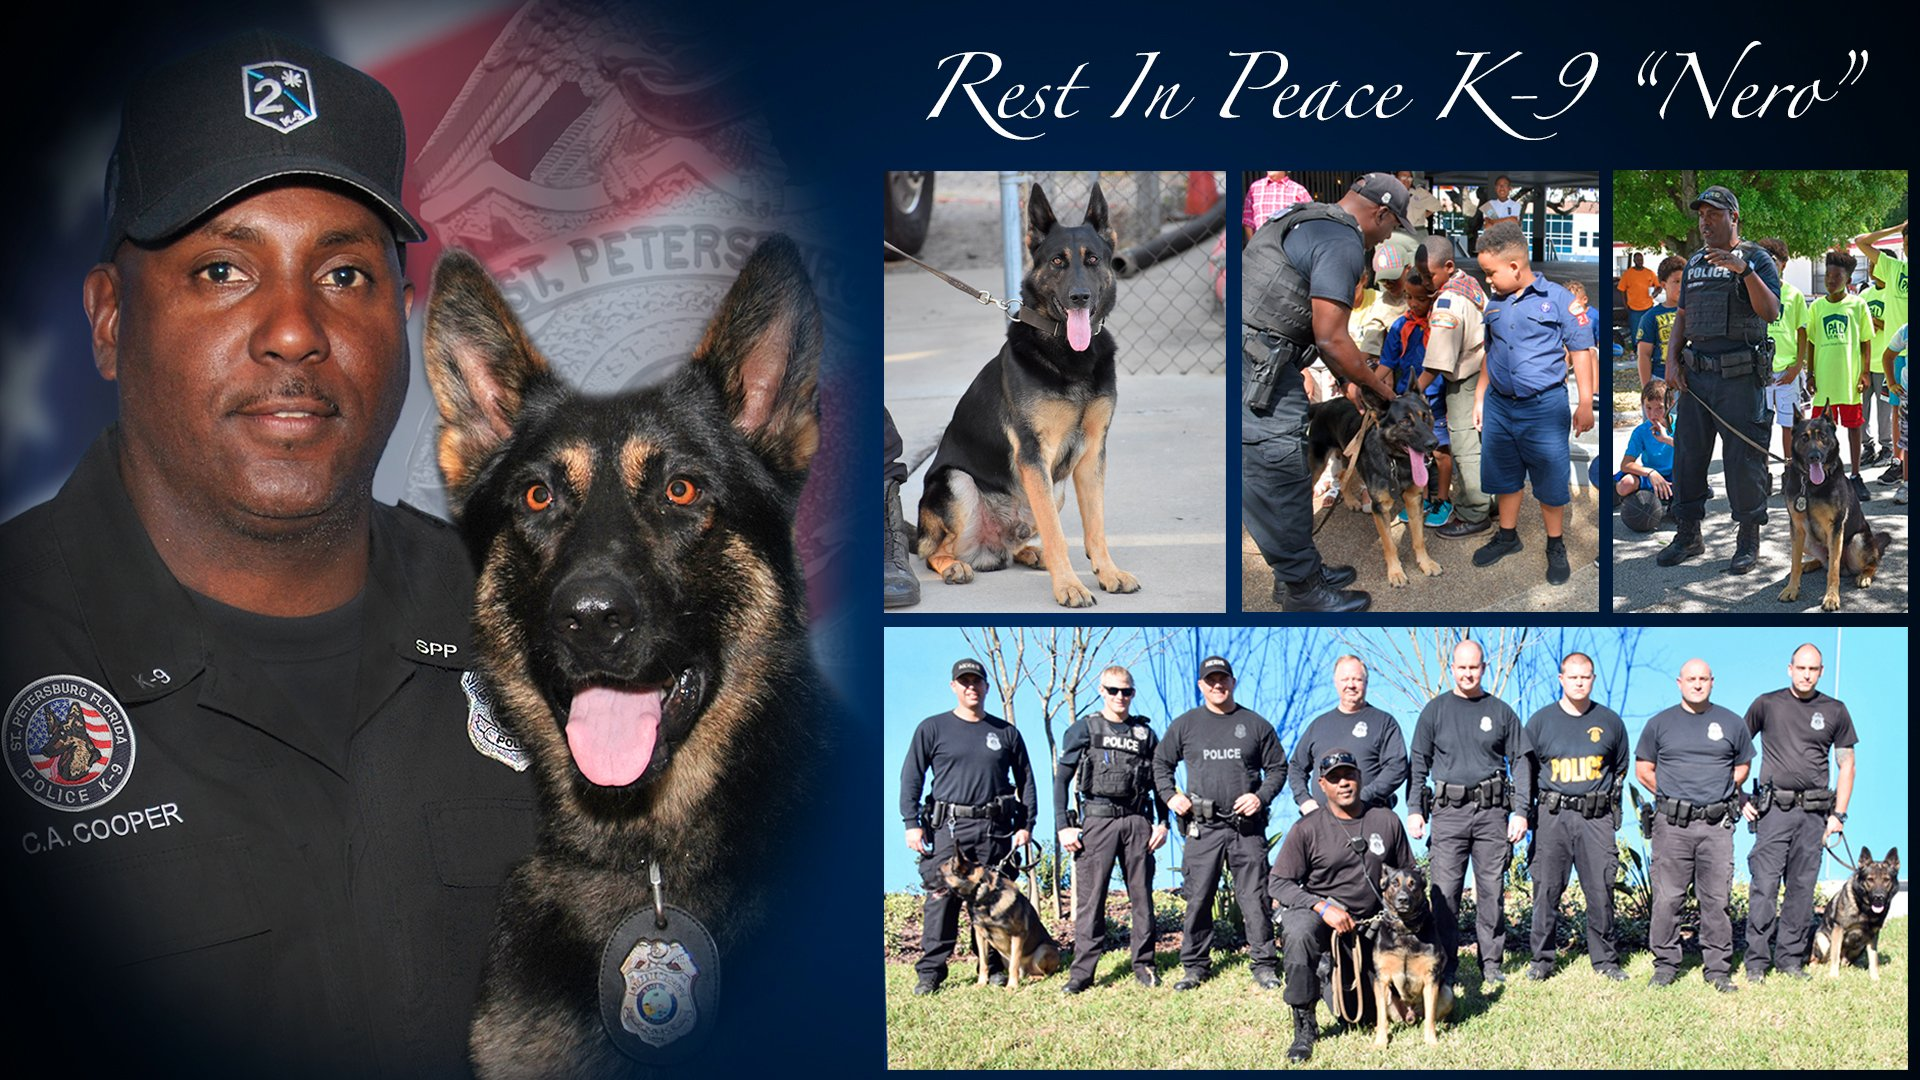 St Petersburg police K-9 dies after years of service | WFLA